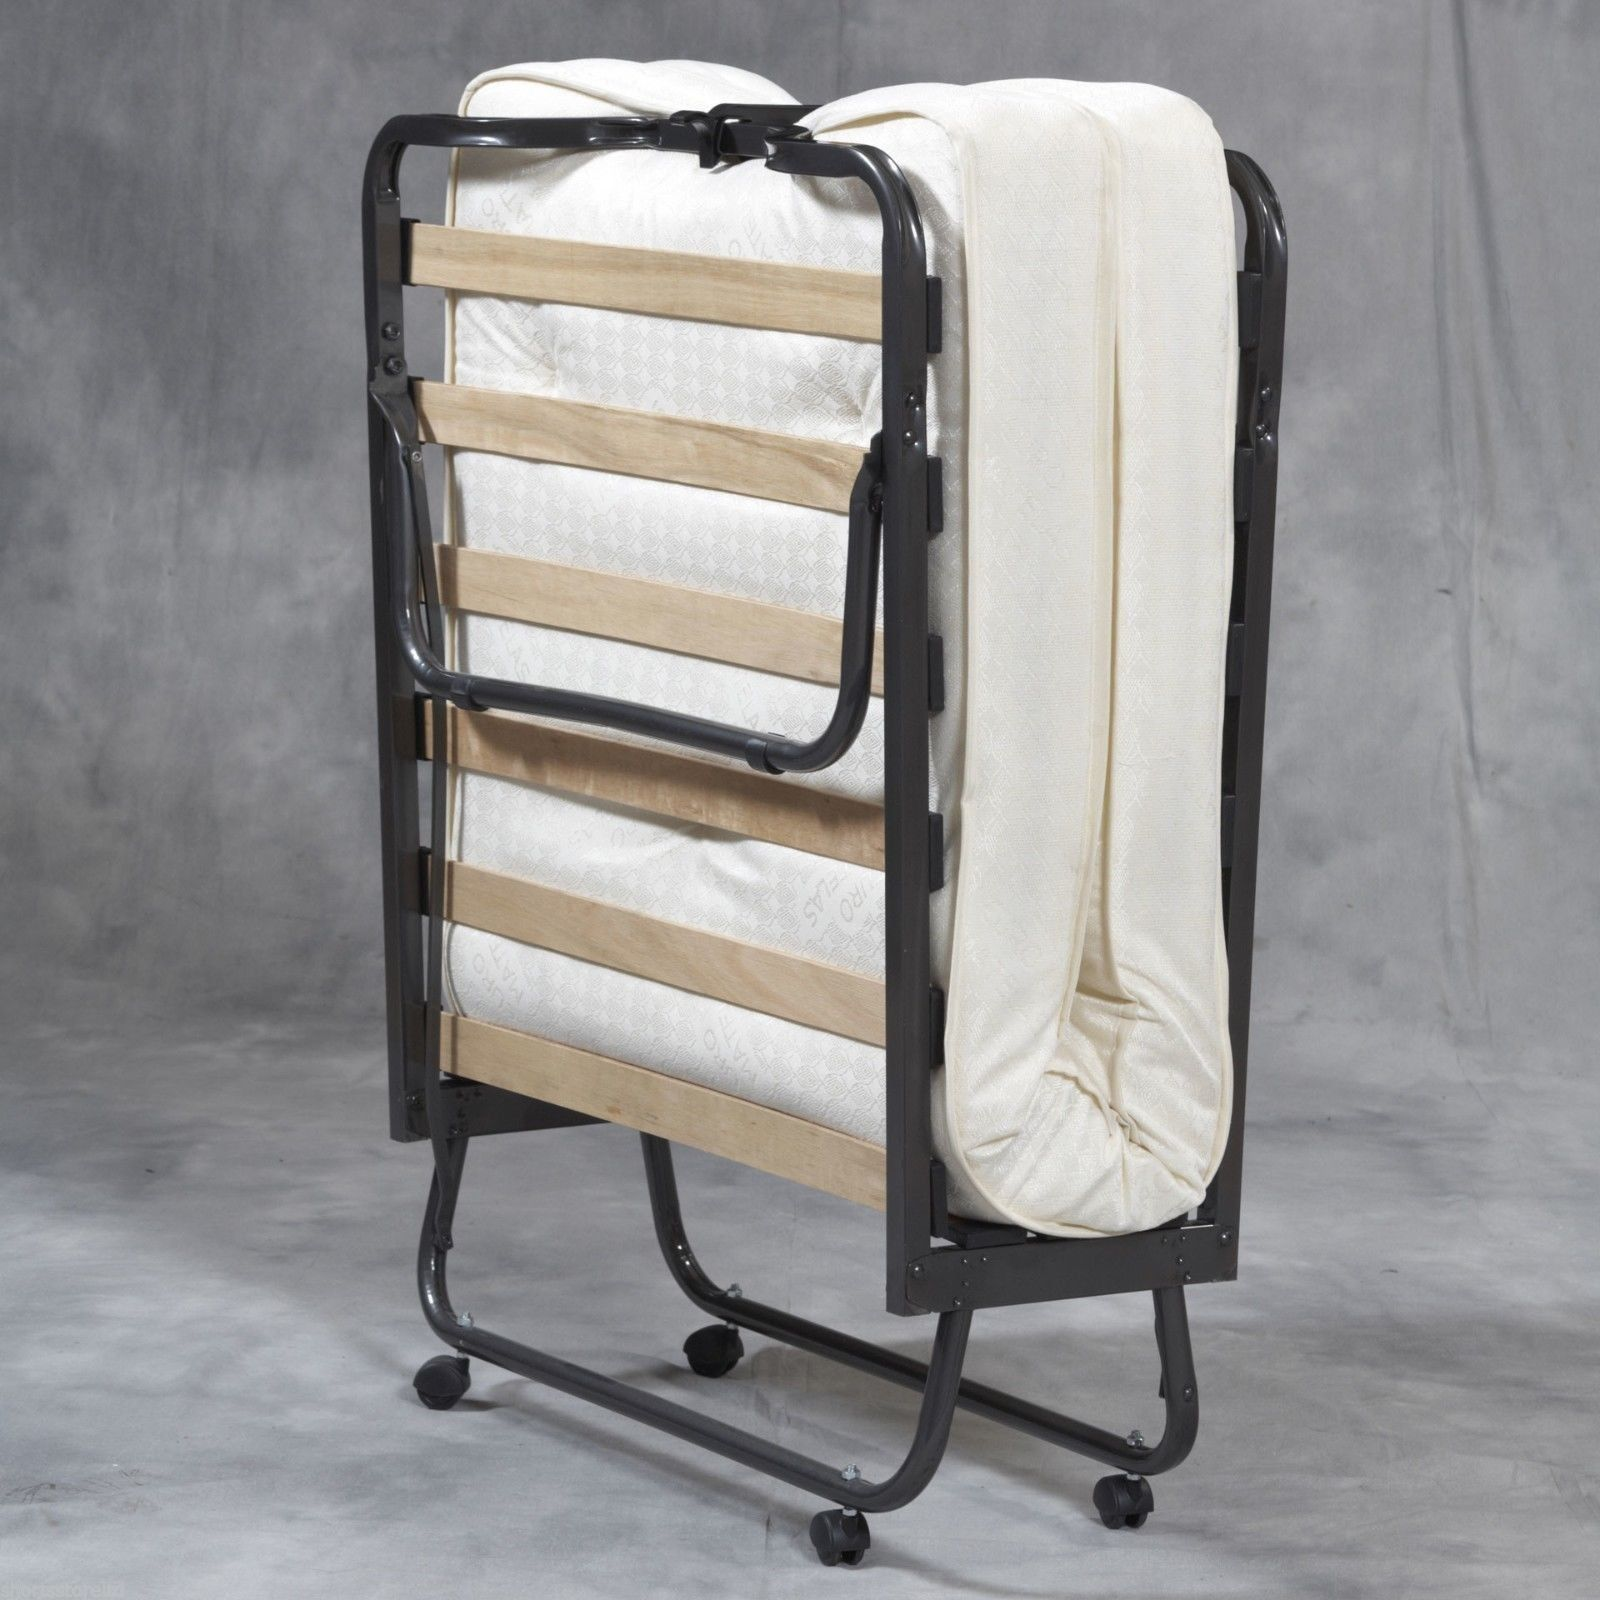 cot mattress comfortable x simmons most multiple graceful curtain bed folding sizes walmart with lovely extra cots com beautysleep foam memory portable foldaway guest